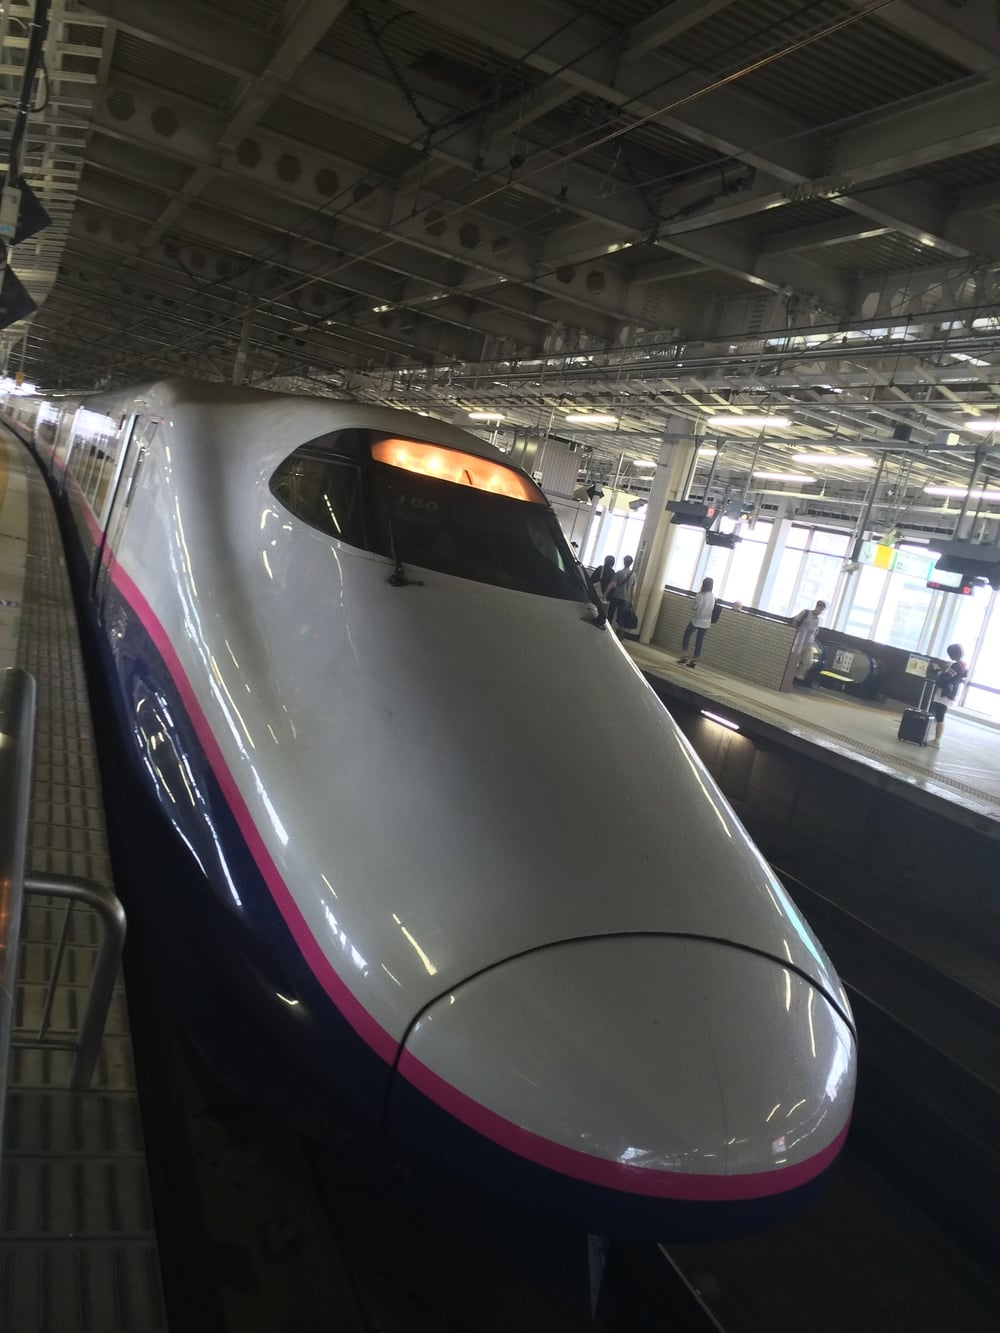 The front of our bullet train, which whisked us from Sendai to Tokyo (just under 250 miles) in less than 90 minutes.